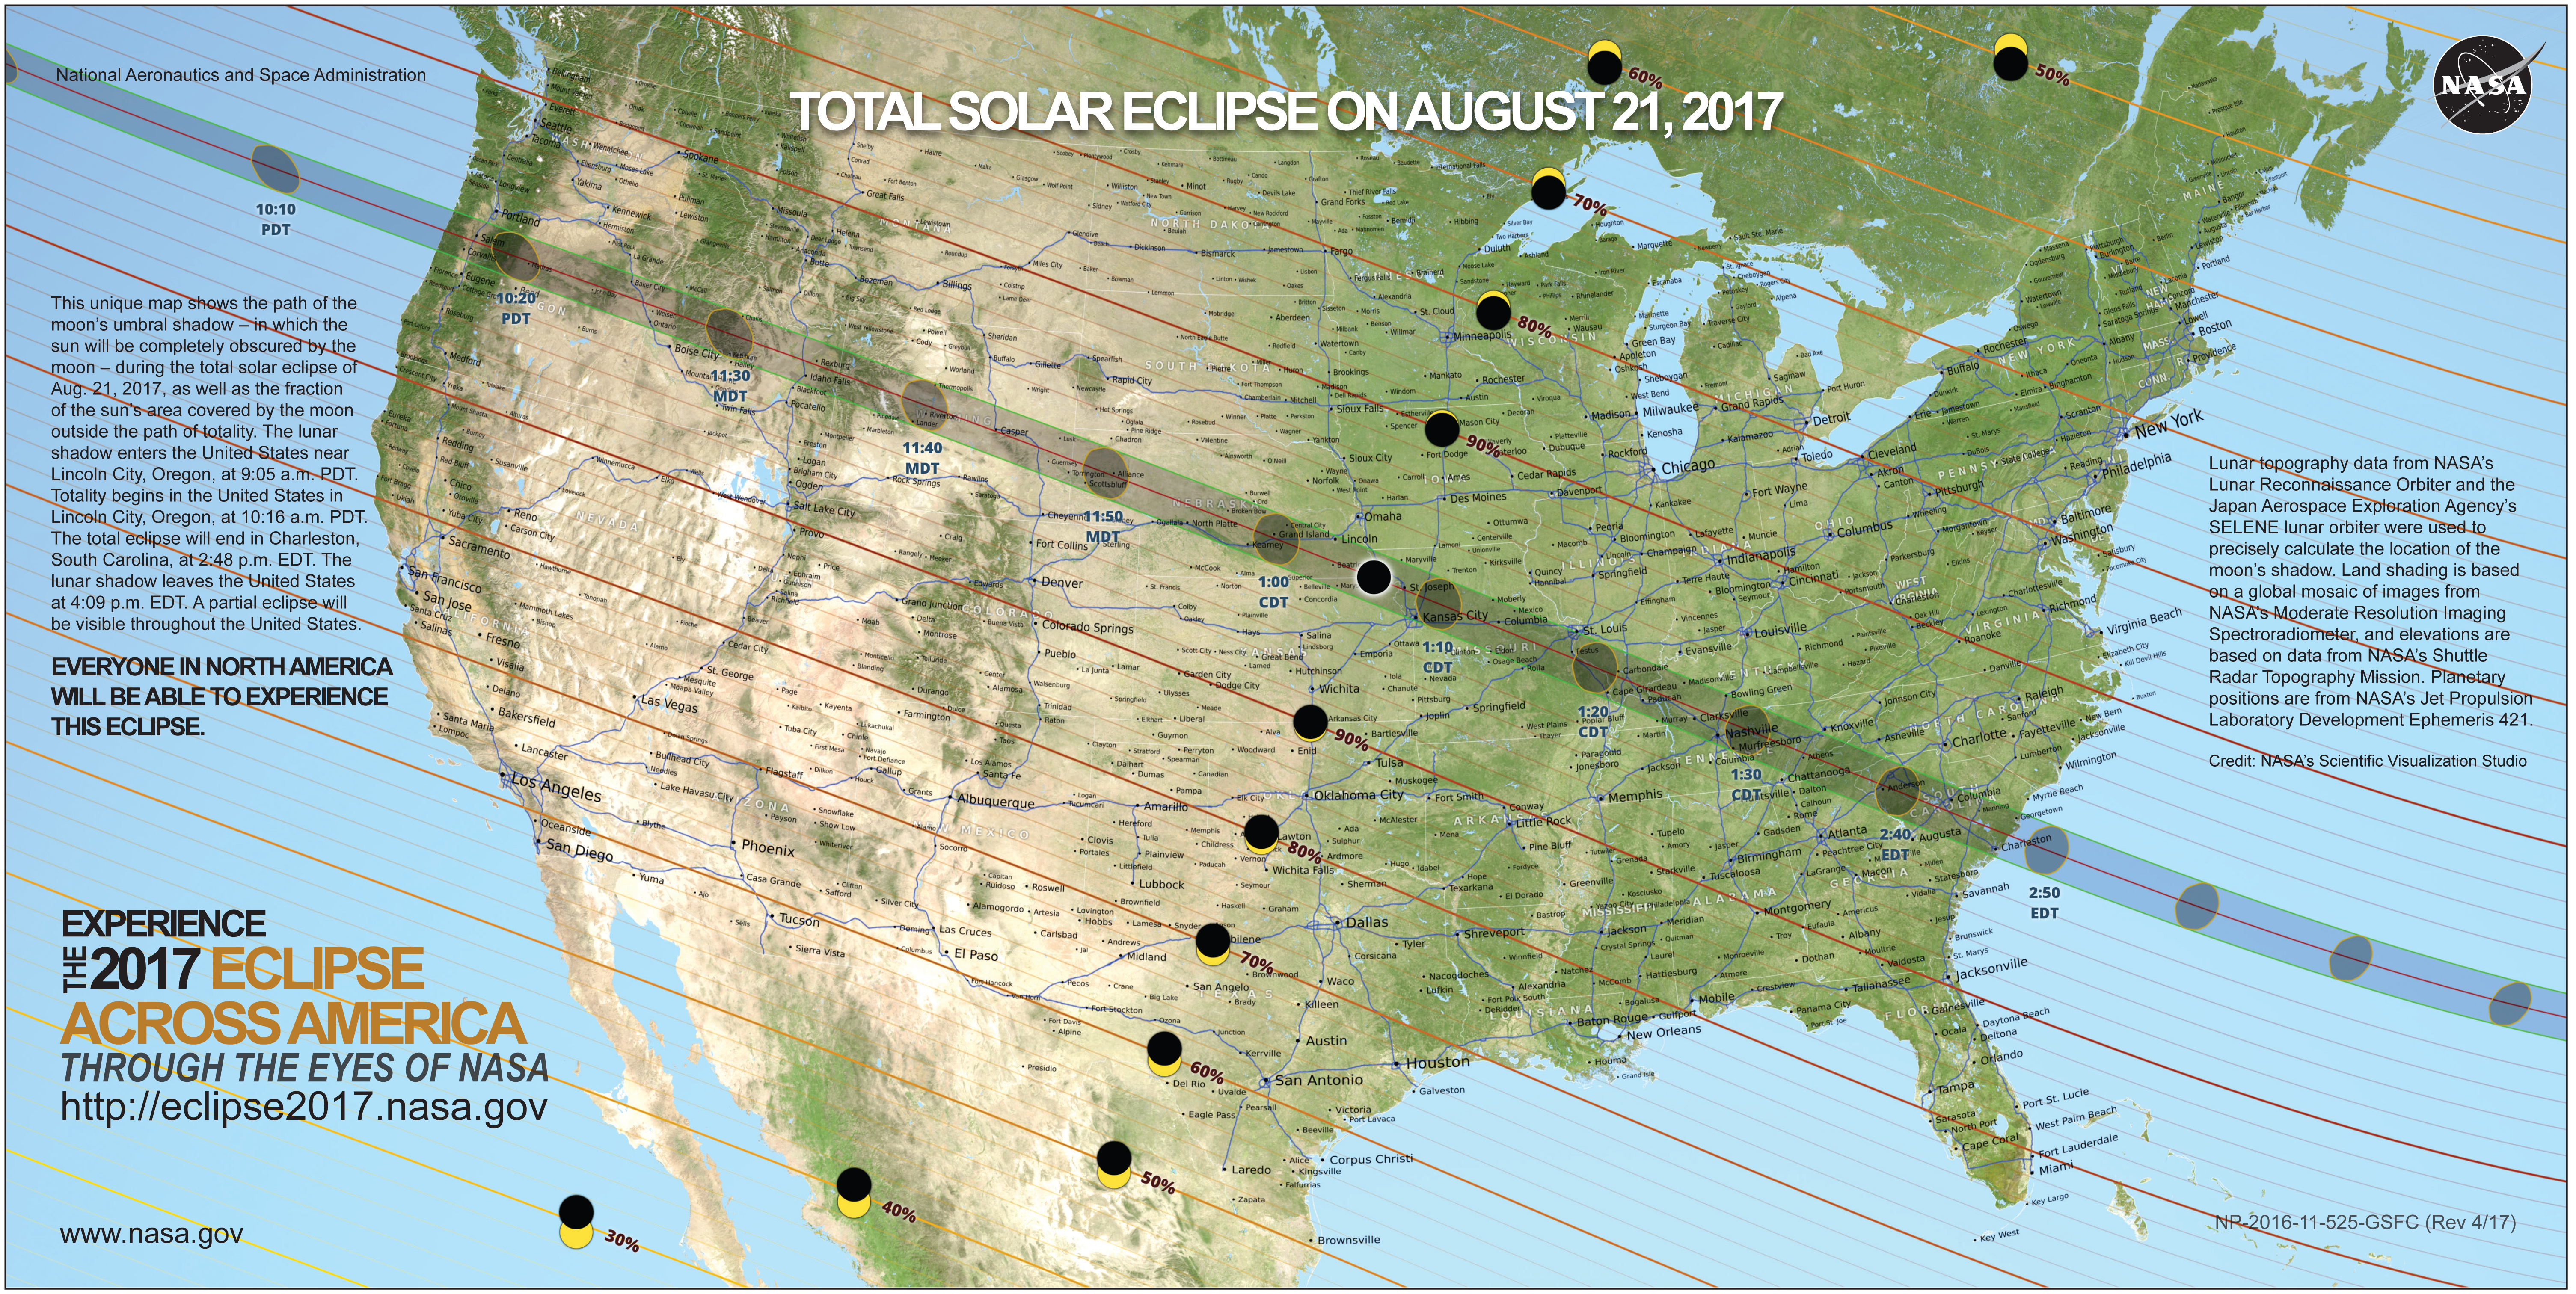 Total Solar Eclipse on August 21, 2017 map